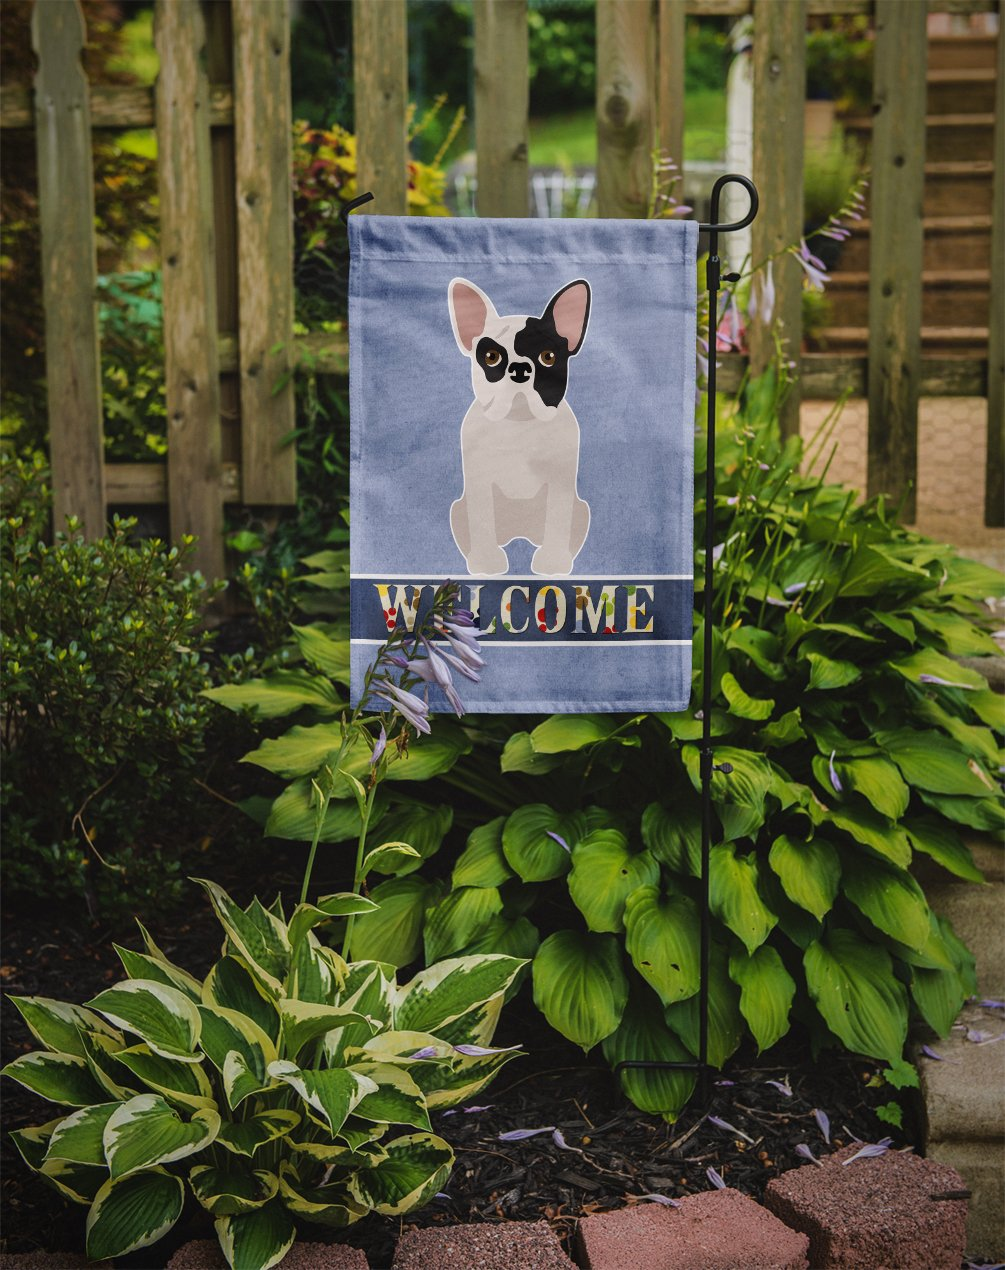 Black and White French Bulldog Welcome Flag Garden Size CK3692GF by Caroline's Treasures